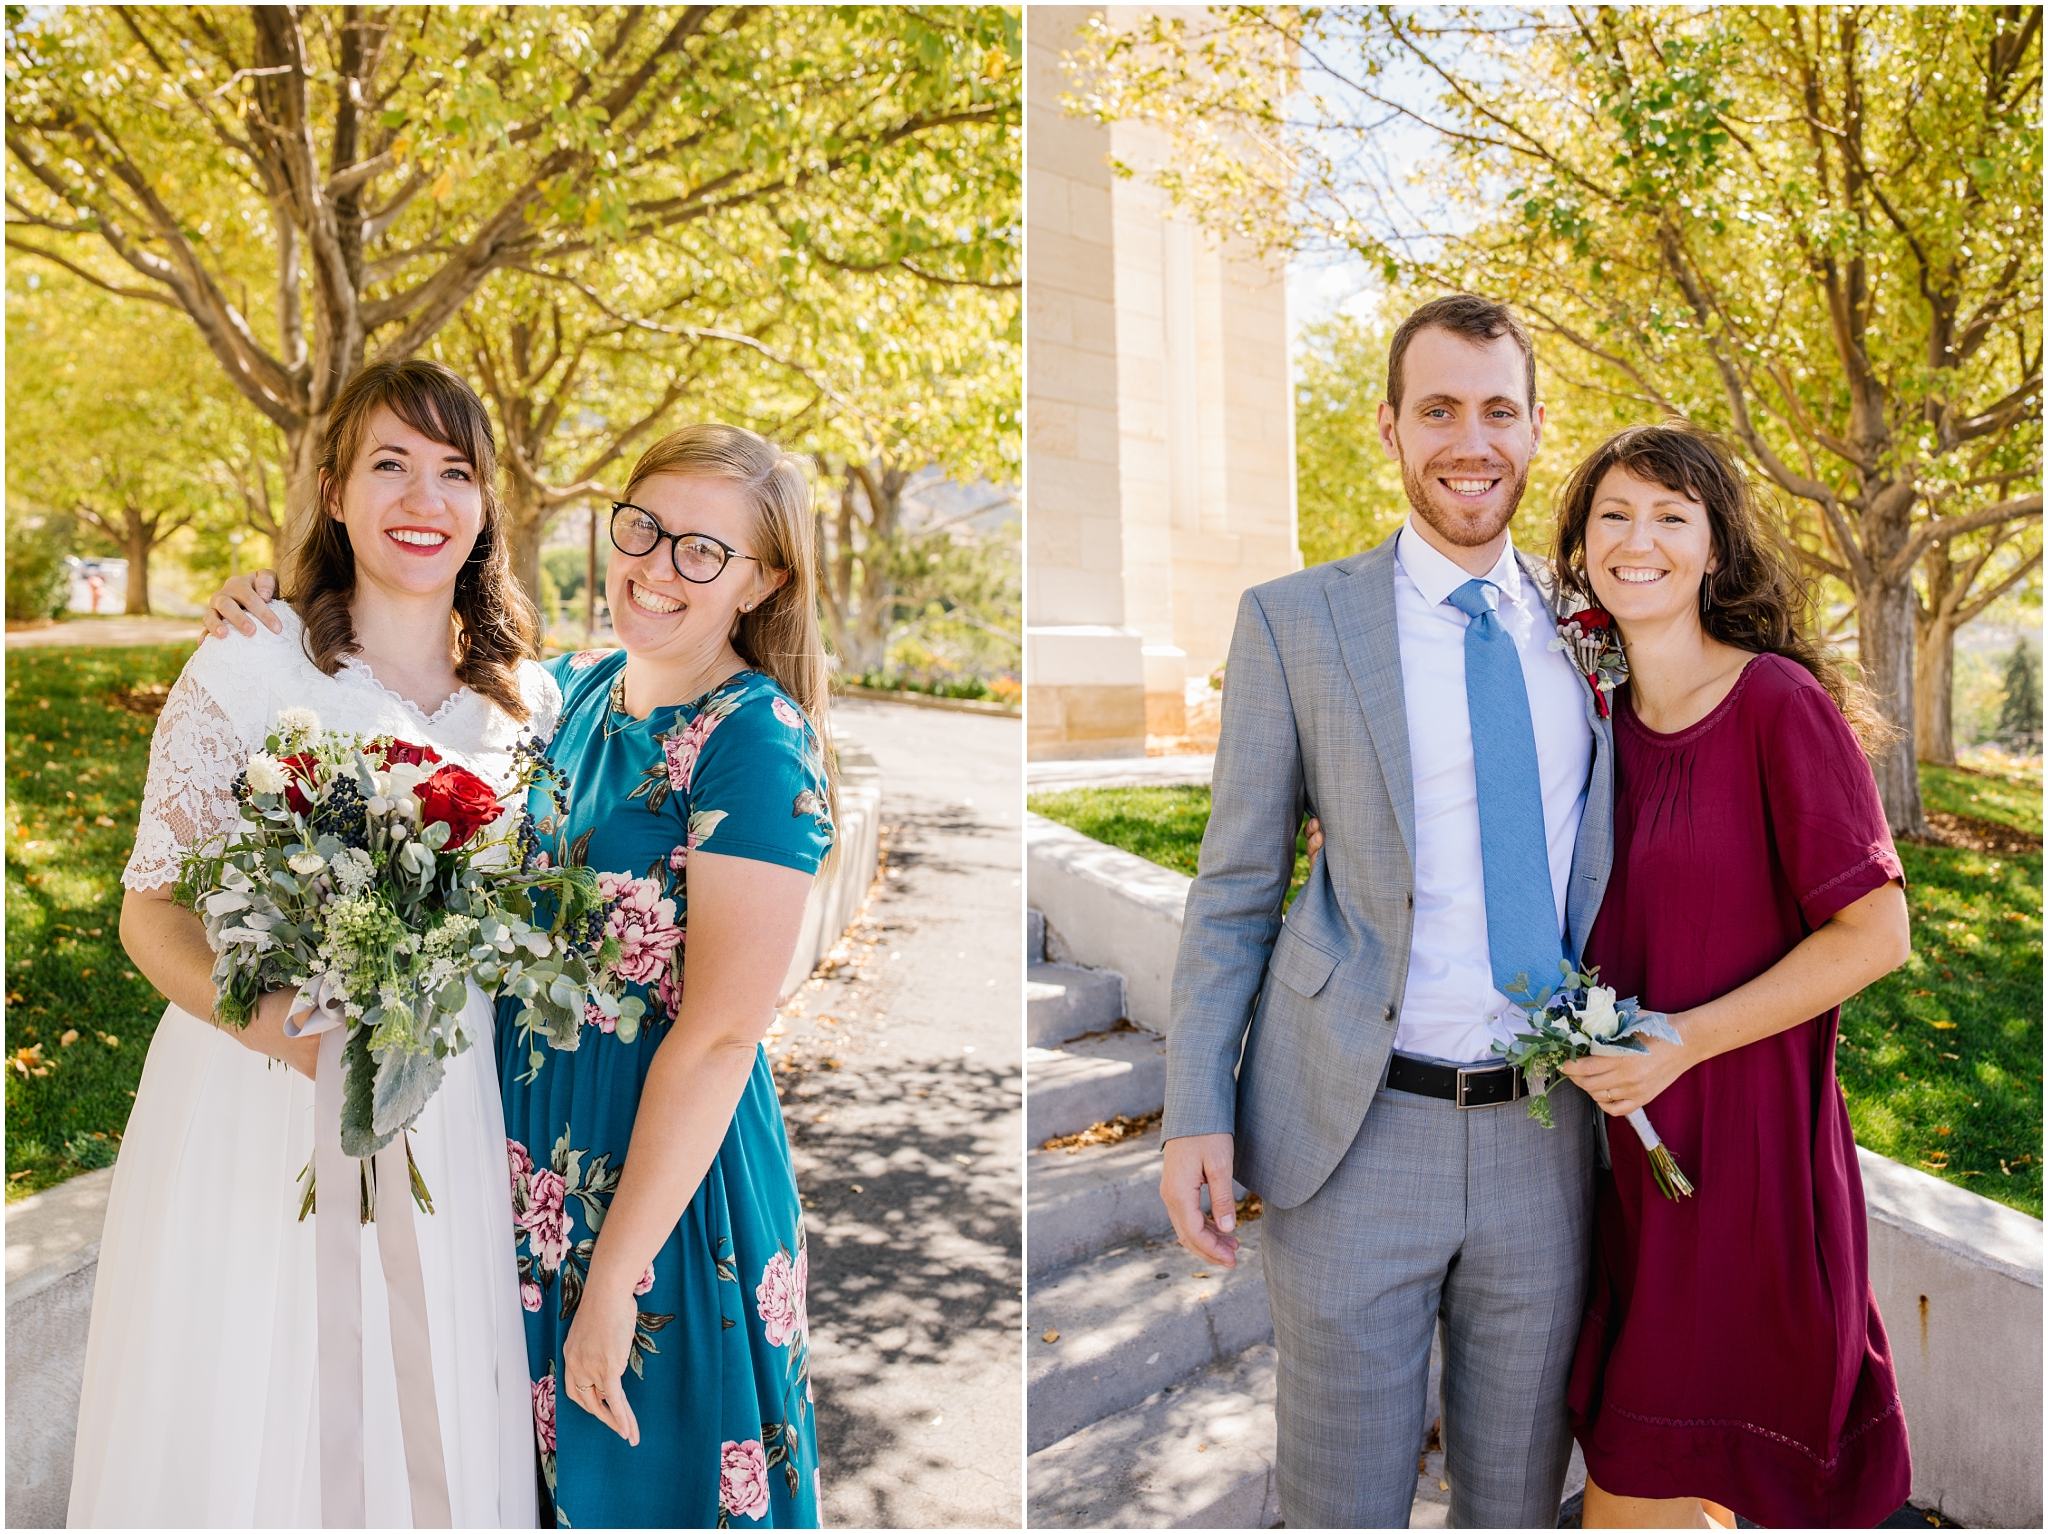 BrynneWinston-65_Lizzie-B-Imagery-Utah-Wedding-Photographer-Utah-County-Manti-Temple.jpg